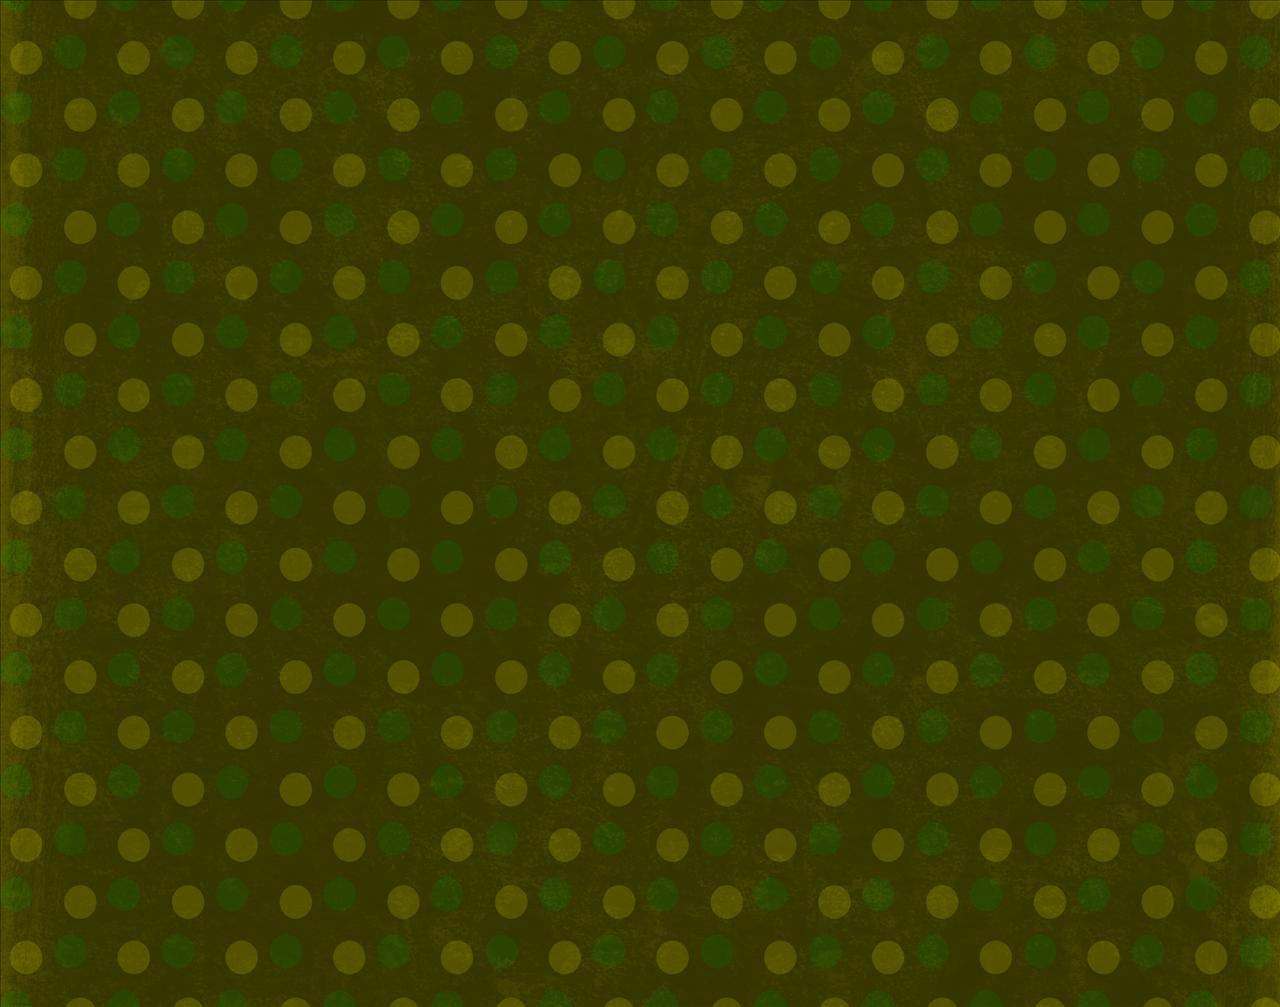 Dark Dots Backgrounds